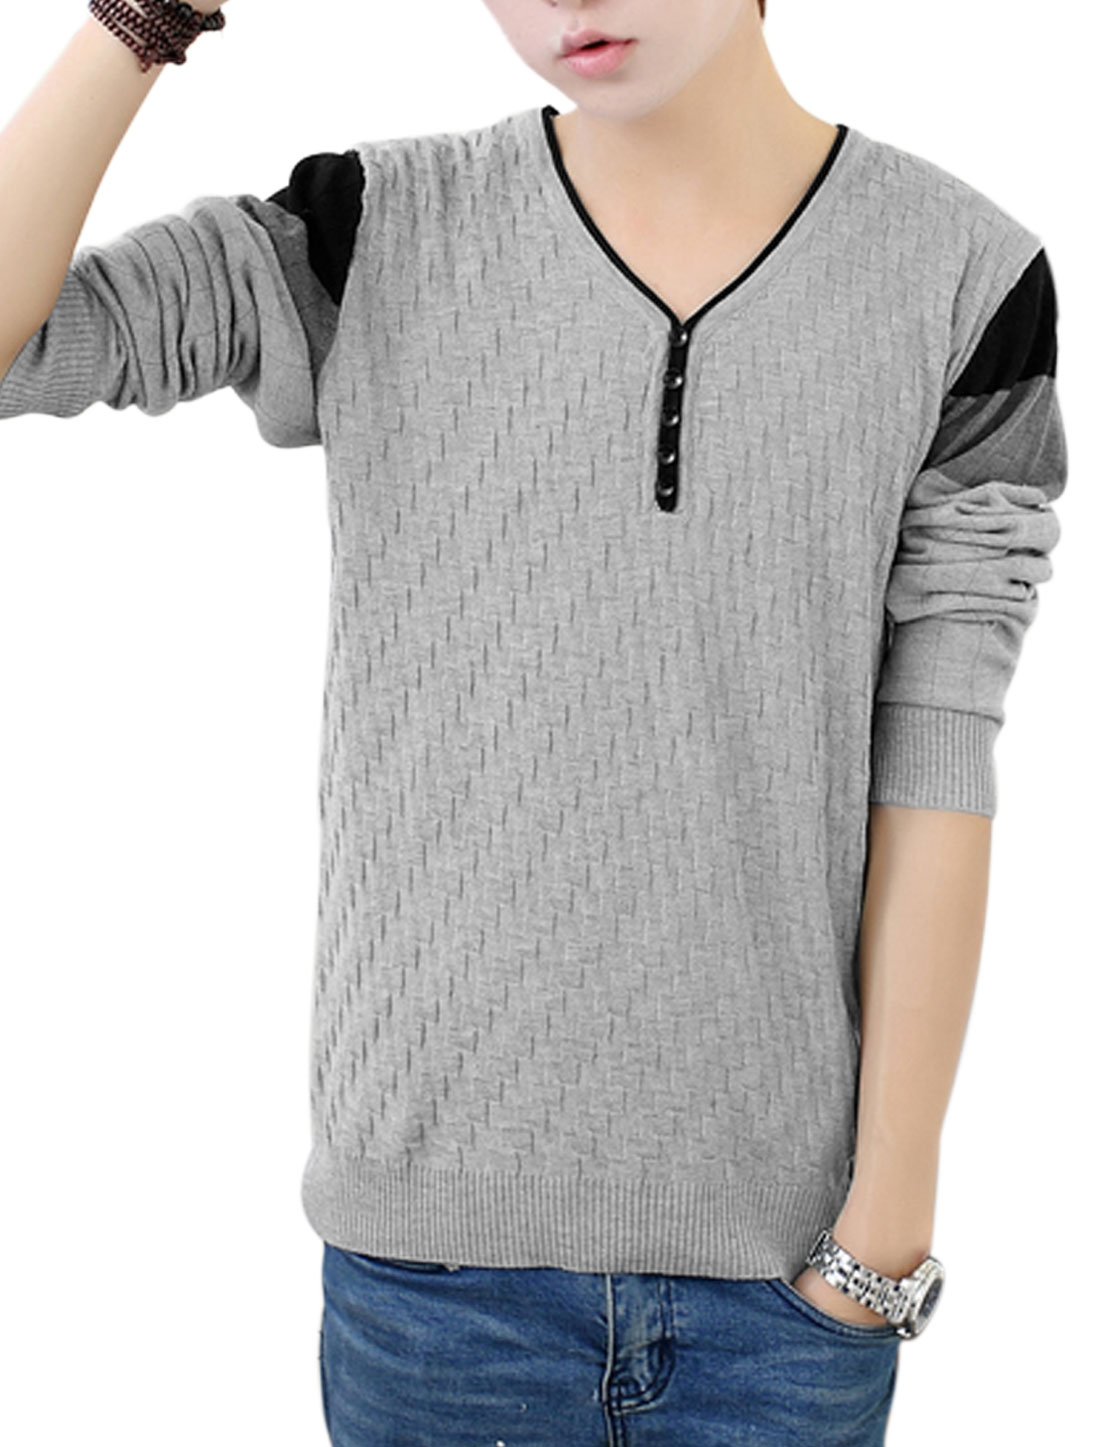 Men Gray Pullover Weaven Pattern Button Decor Ribbed Trim Leisure Knit Shirt S